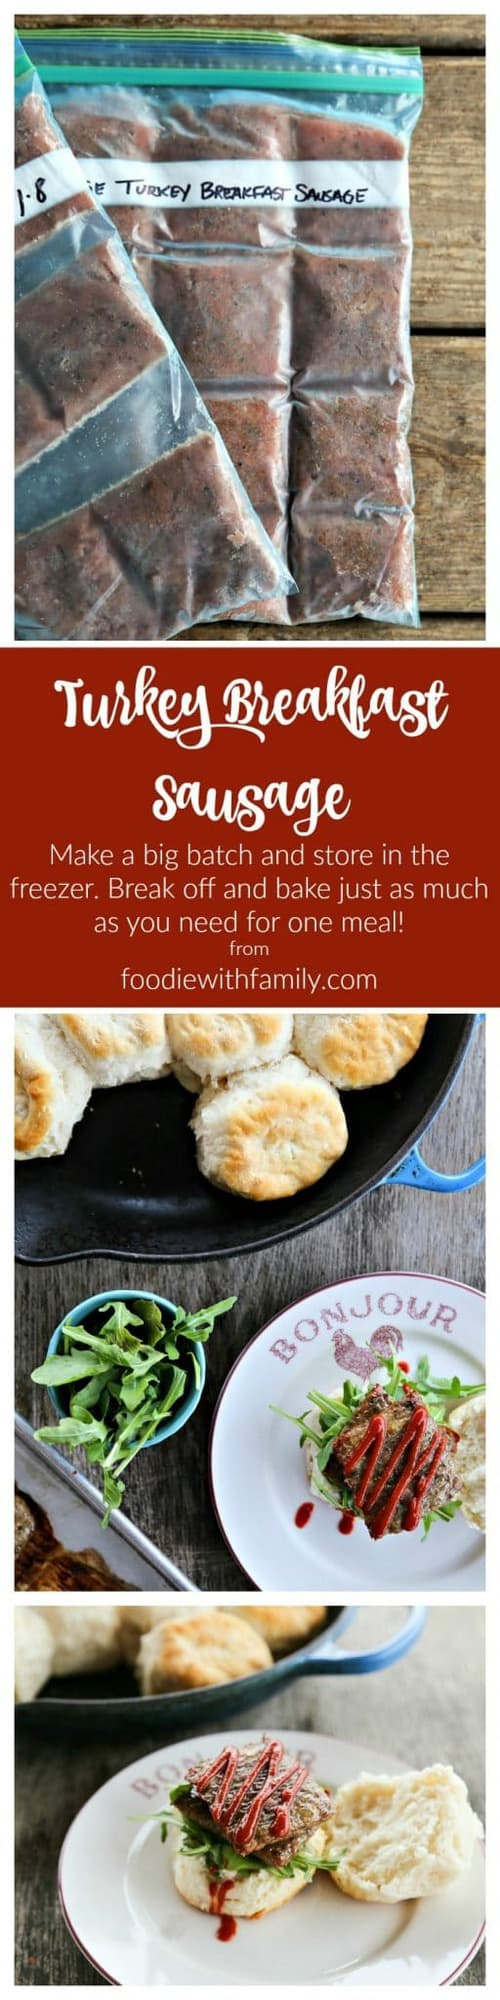 Turkey Breakfast Sausage: a simple, nutritious, delicious alternative to commercial breakfast sausages. Make, freeze, break, and bake!